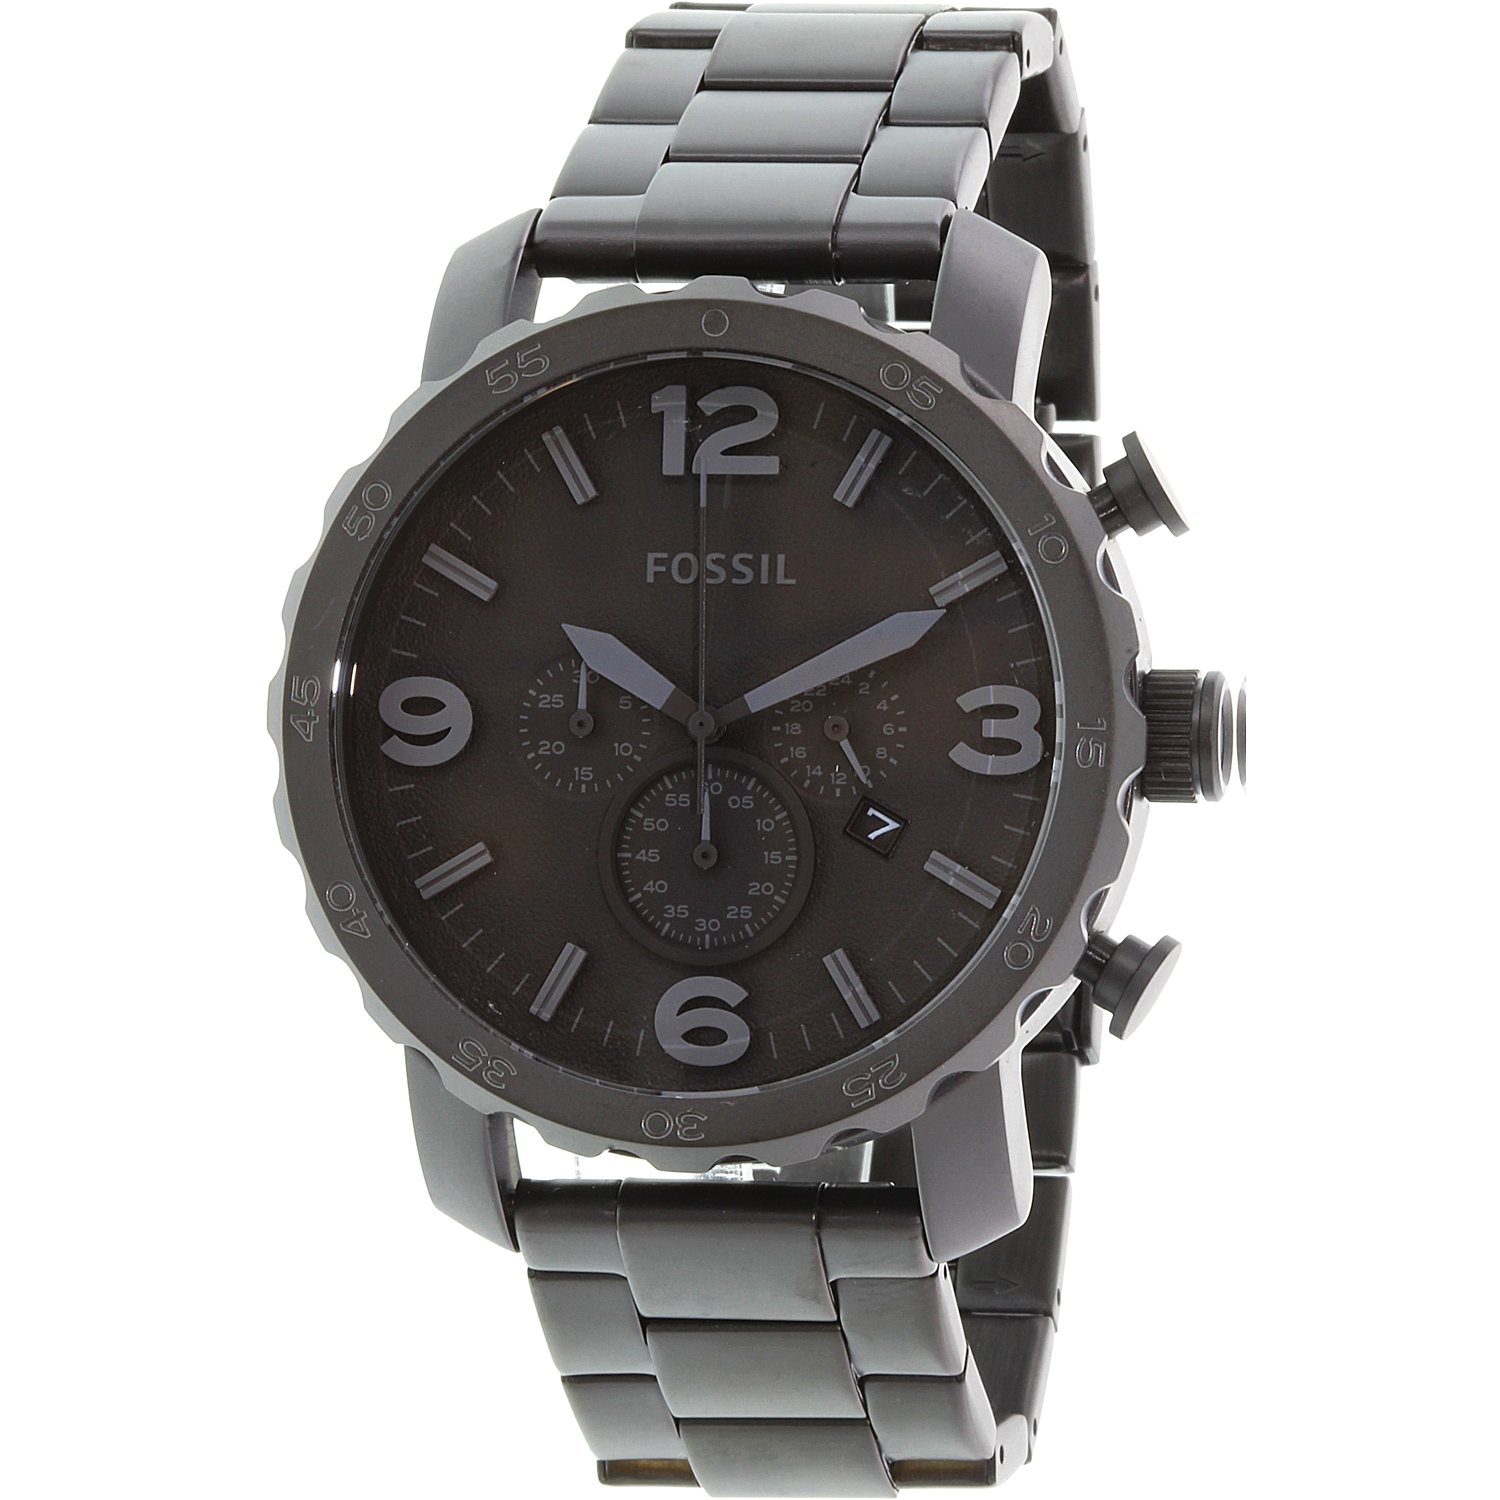 Fossil Nate Chronograph Men's Watch, JR1401